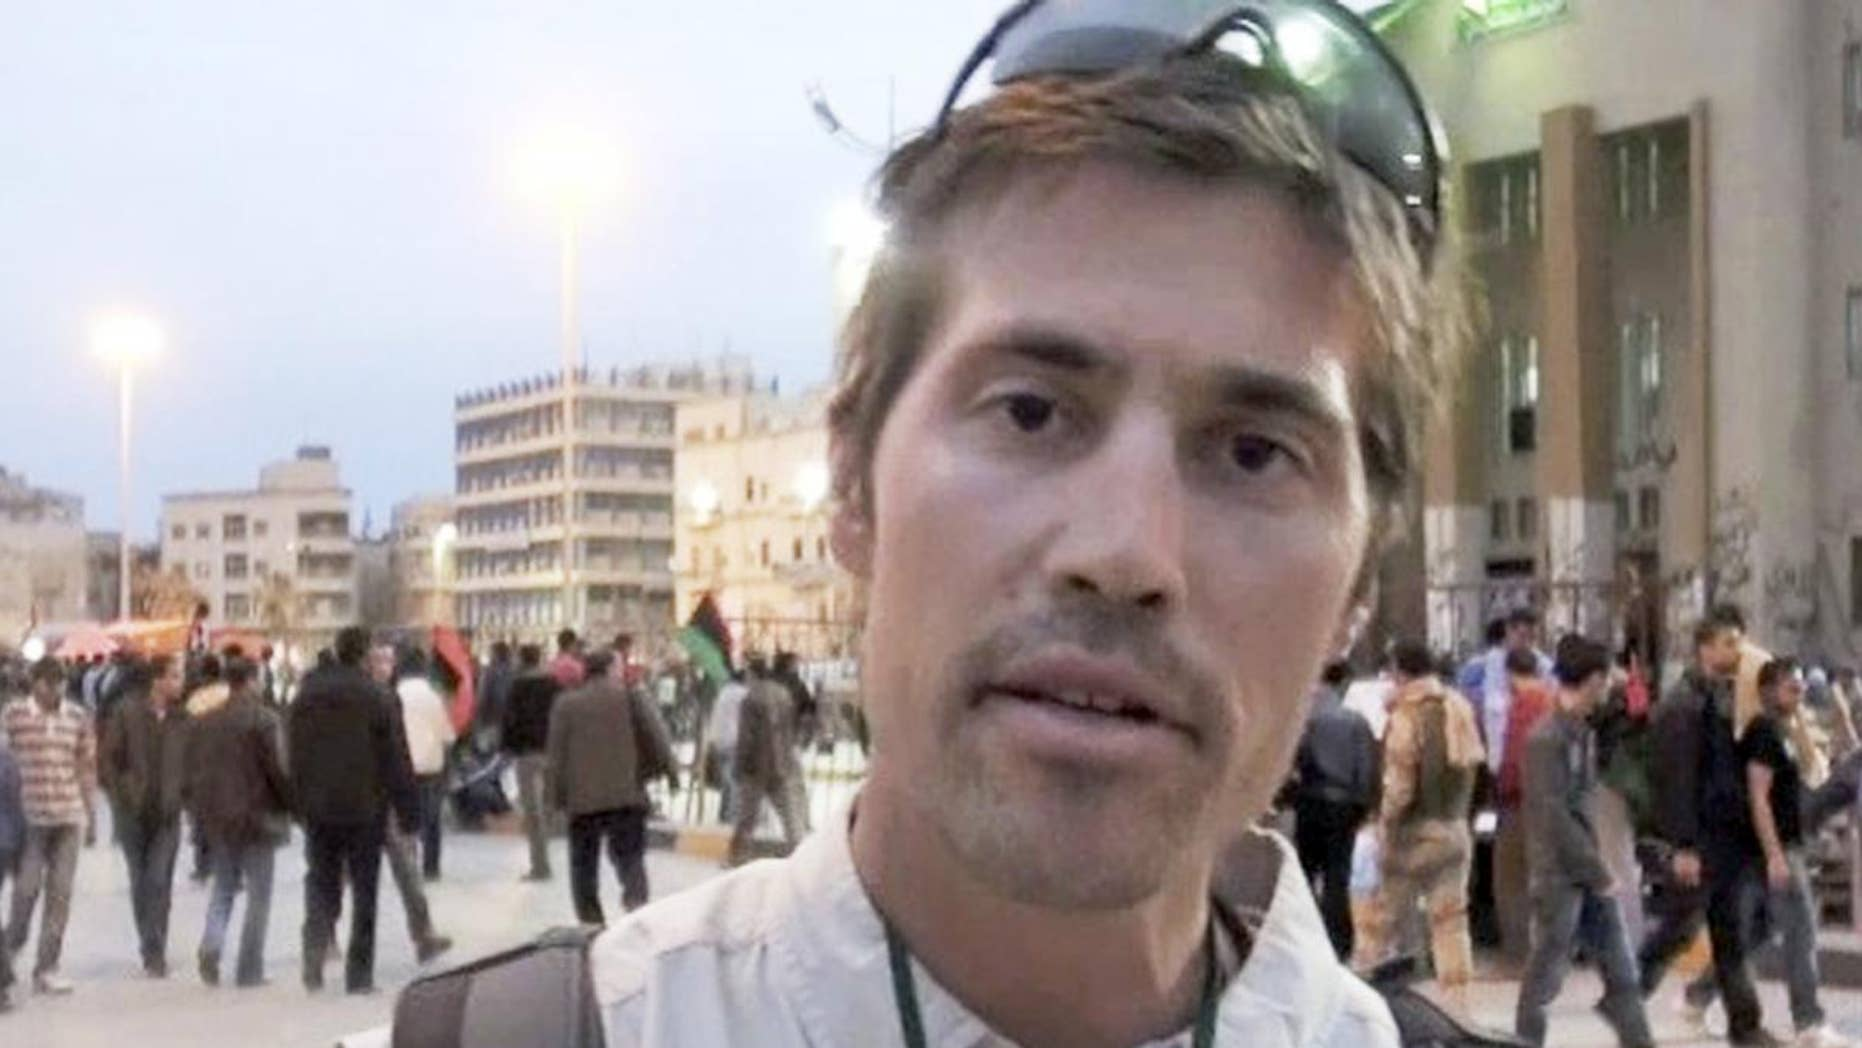 This undated still image from video released Thursday, April 7, 2011 by GlobalPost, shows James Foley of Rochester, N.H., a freelance contributor for GlobalPost, in Benghazi, Libya. GlobalPost said it has been told Foley was taken prisoner in Libya on Tuesday, April 5, 2011. (AP Photo/GlobalPost)